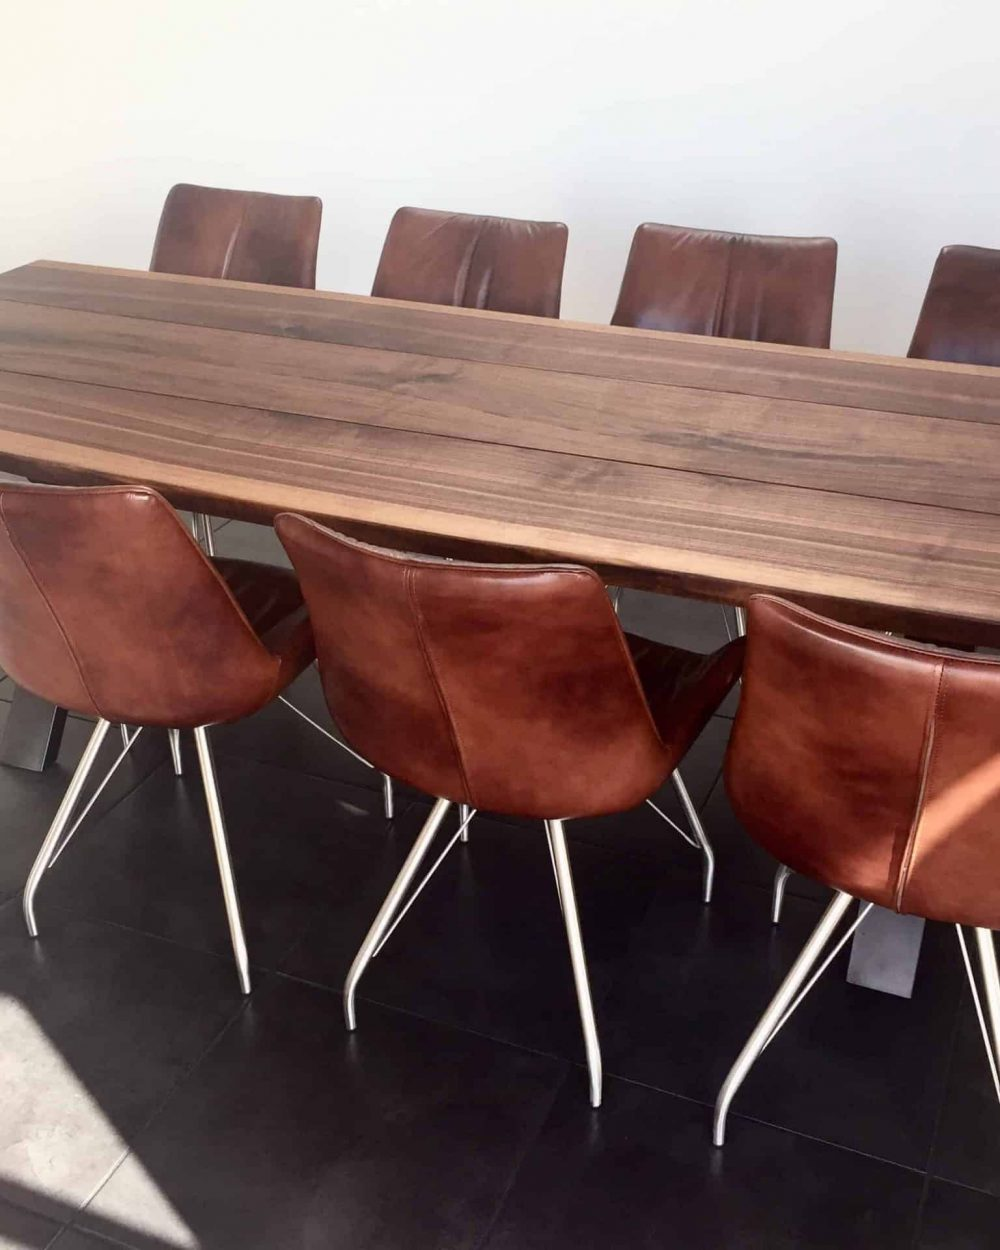 walnut table 04 1 - Walnut table with chairs in natural oil